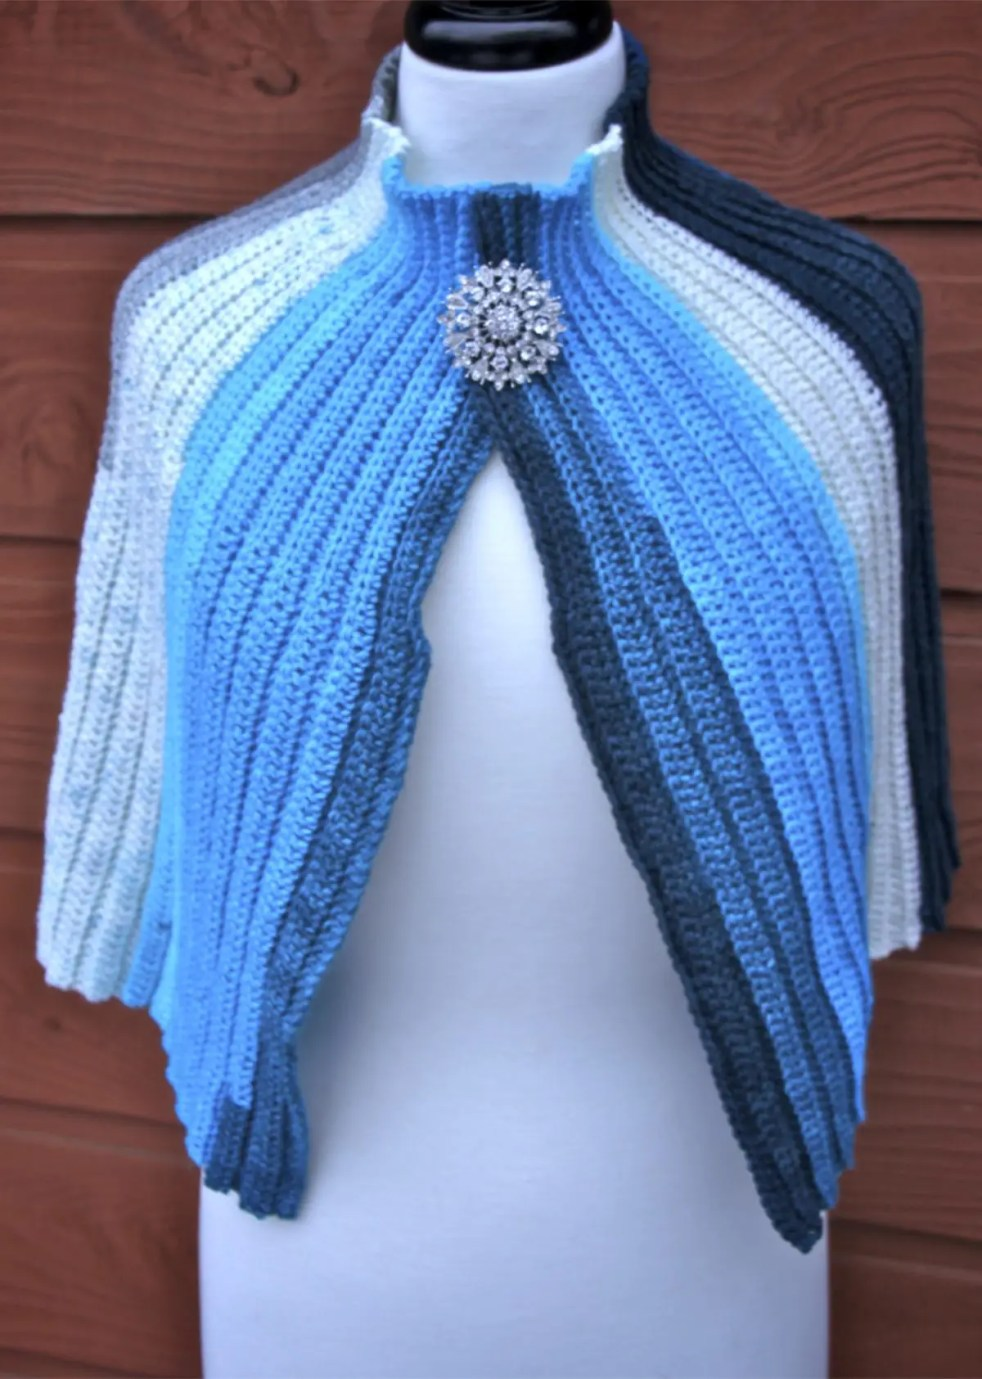 On the Town Capelet crochet pattern